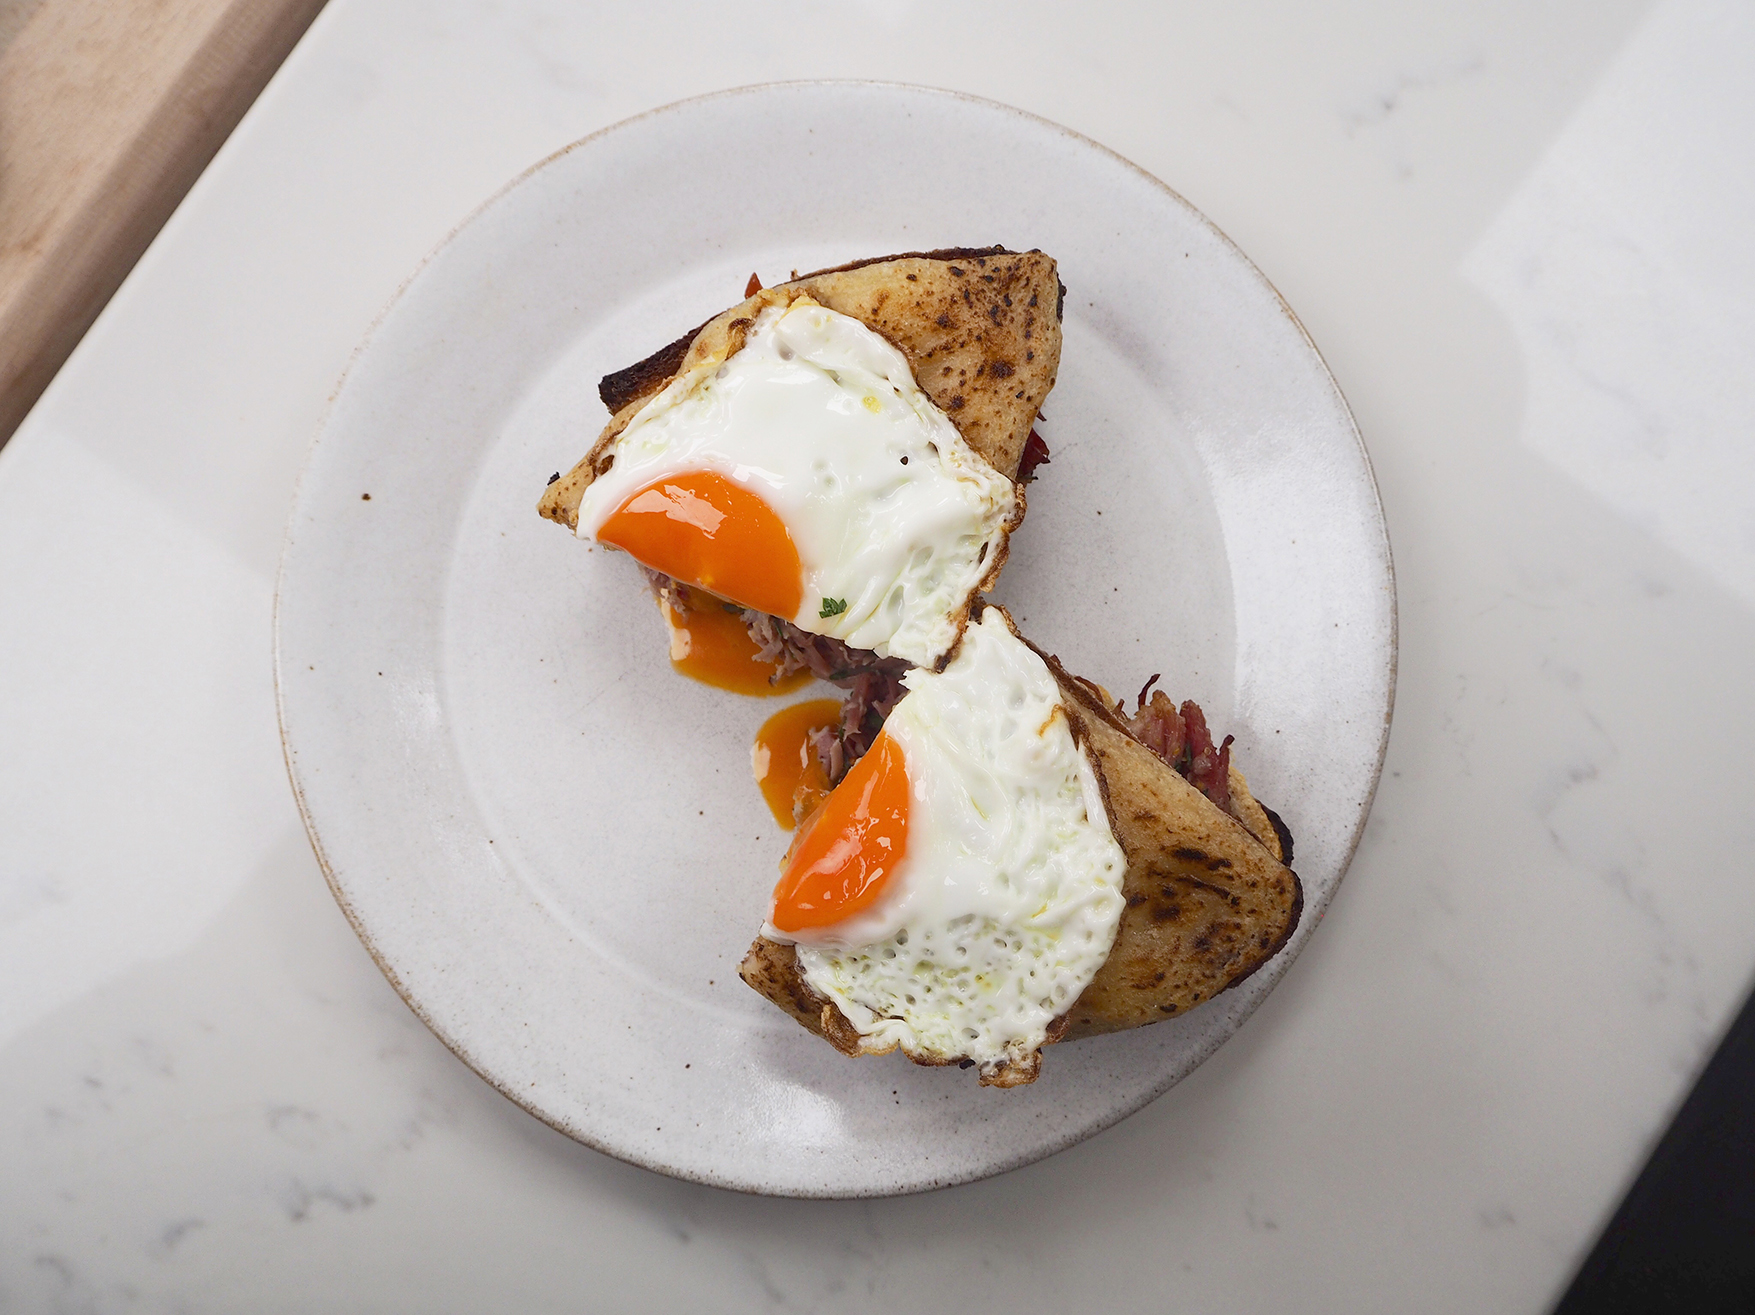 Topping the Croque Madame with a Fried Egg